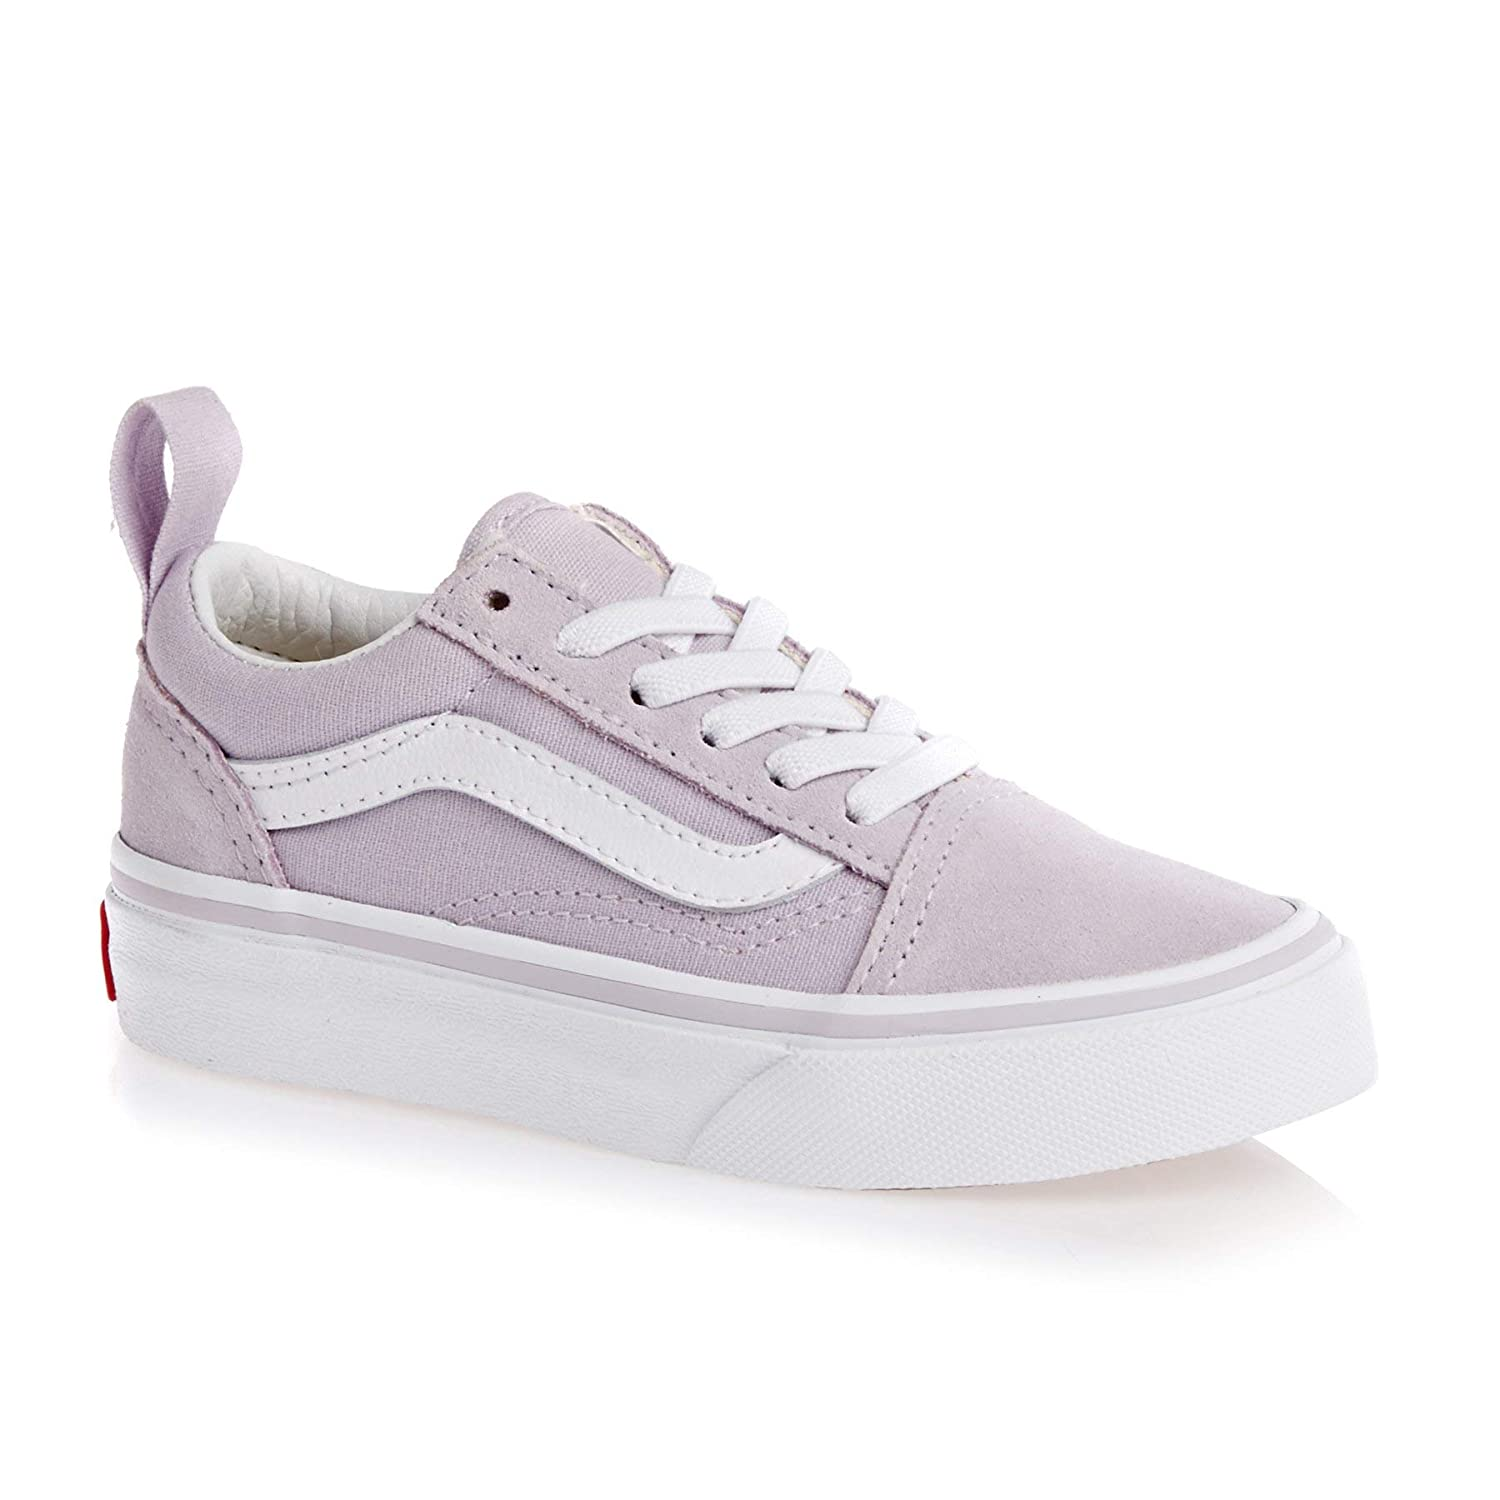 【10%OFF】 SPORTS BLACK SHOE BLACK VANS OLD Kid SKOOL SKOOL D3YBLK B07D7QXMSG 6 M US Big Kid|Lavender Fog Lavender Fog 6 M US Big Kid, mamas store:0c7b0e21 --- svecha37.ru